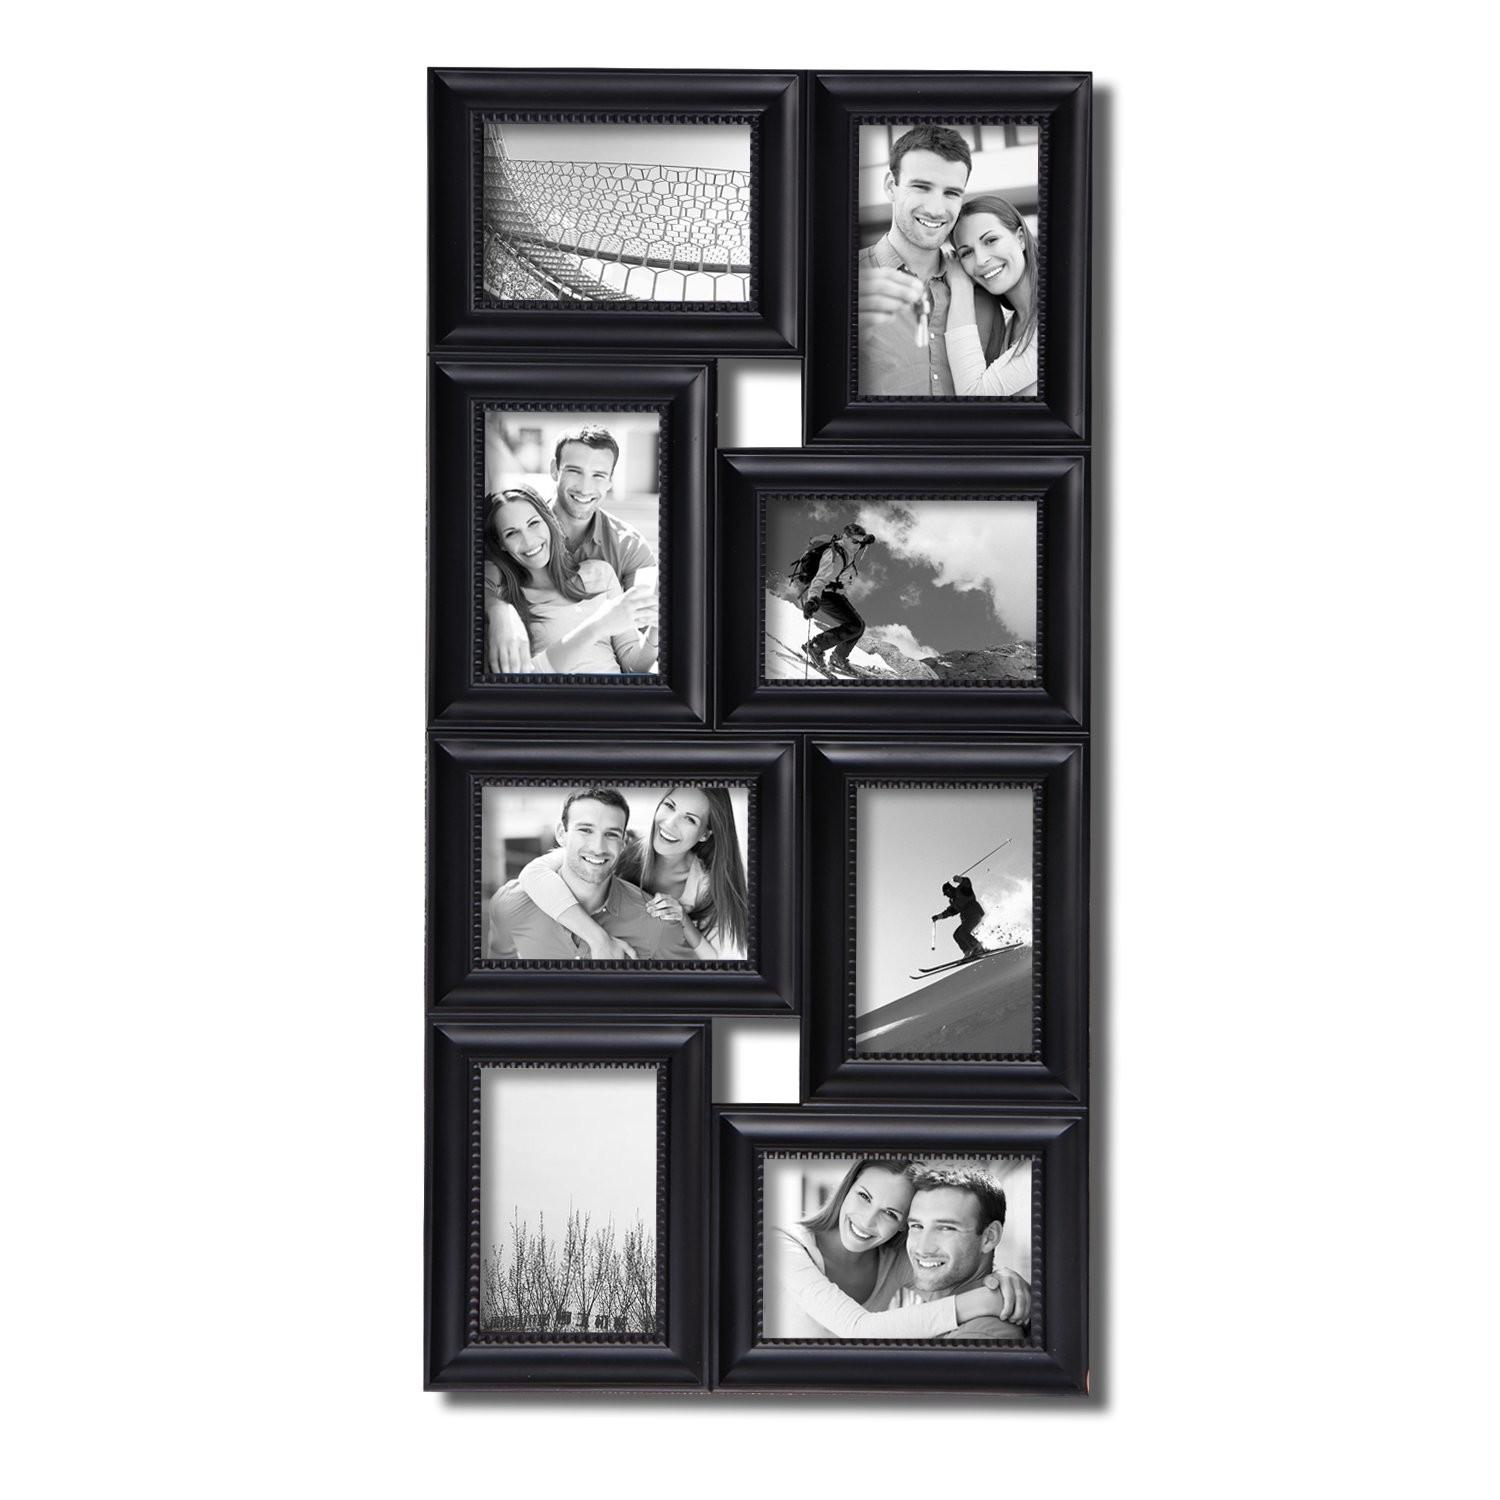 Adecotrading Opening Decorative Wall Hanging Collage